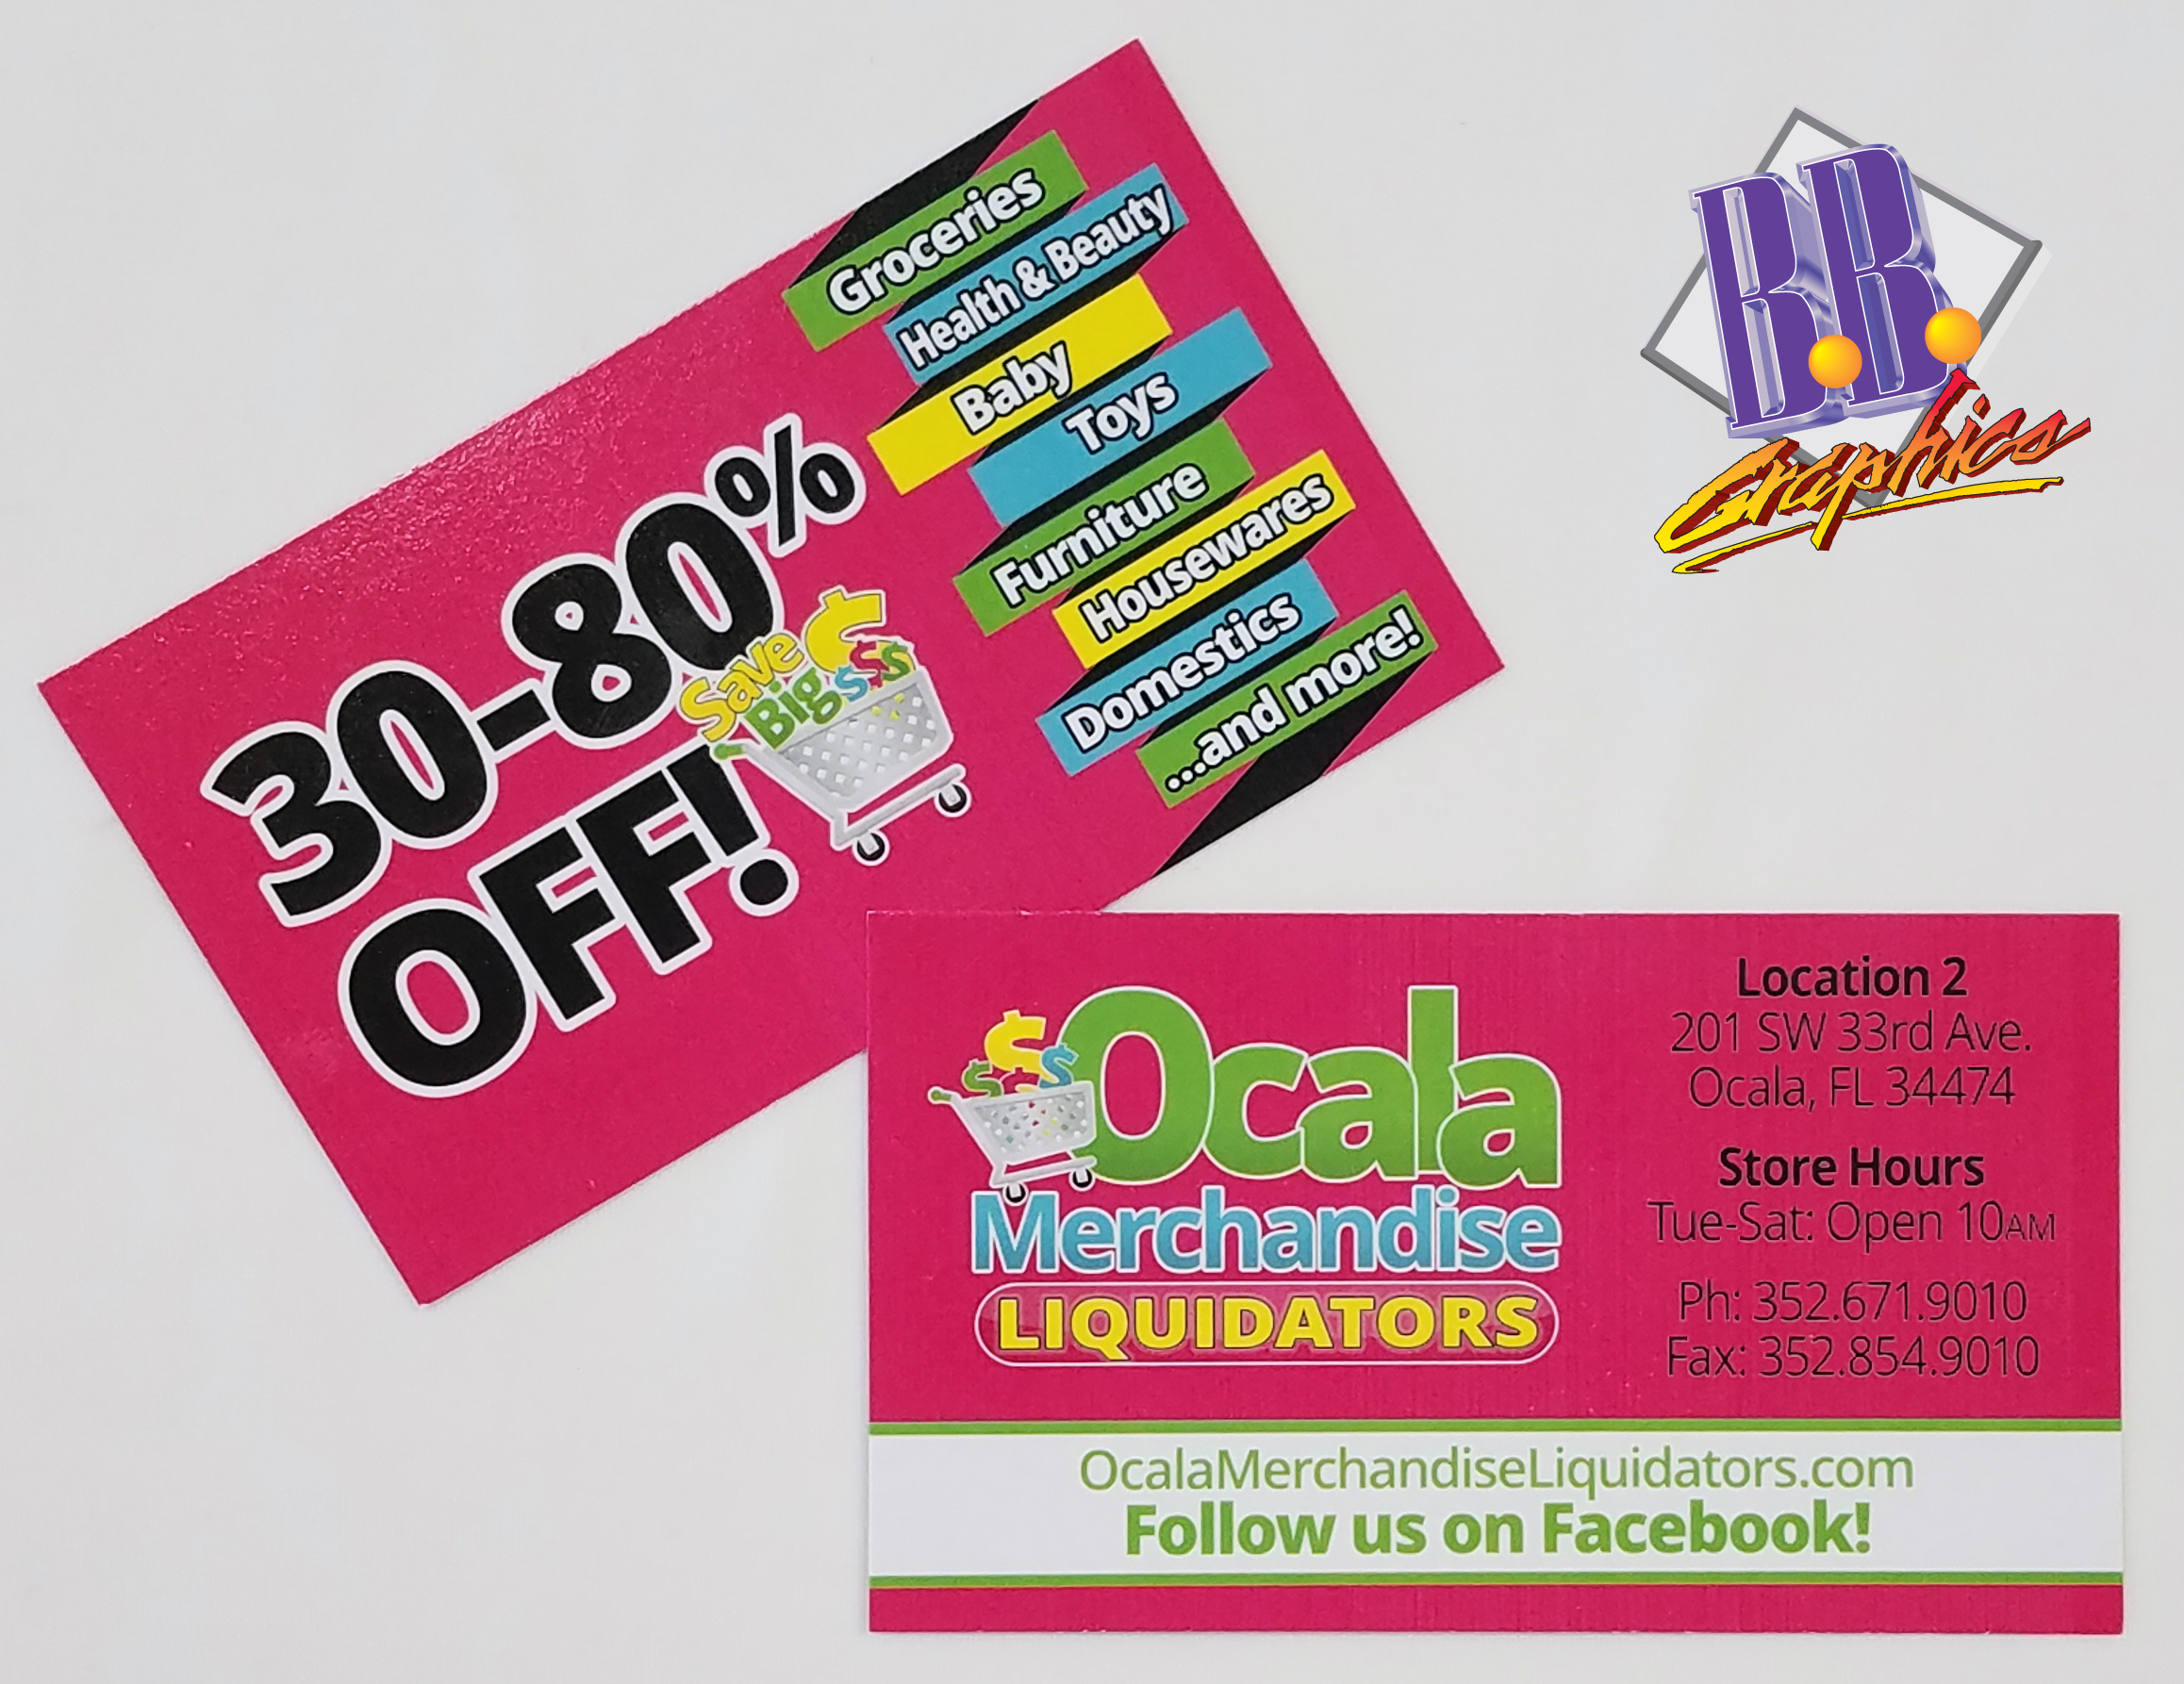 Ocala merchandise liquidator business cards bb graphics the wrap ocala merchandise liquidator business cards reheart Image collections